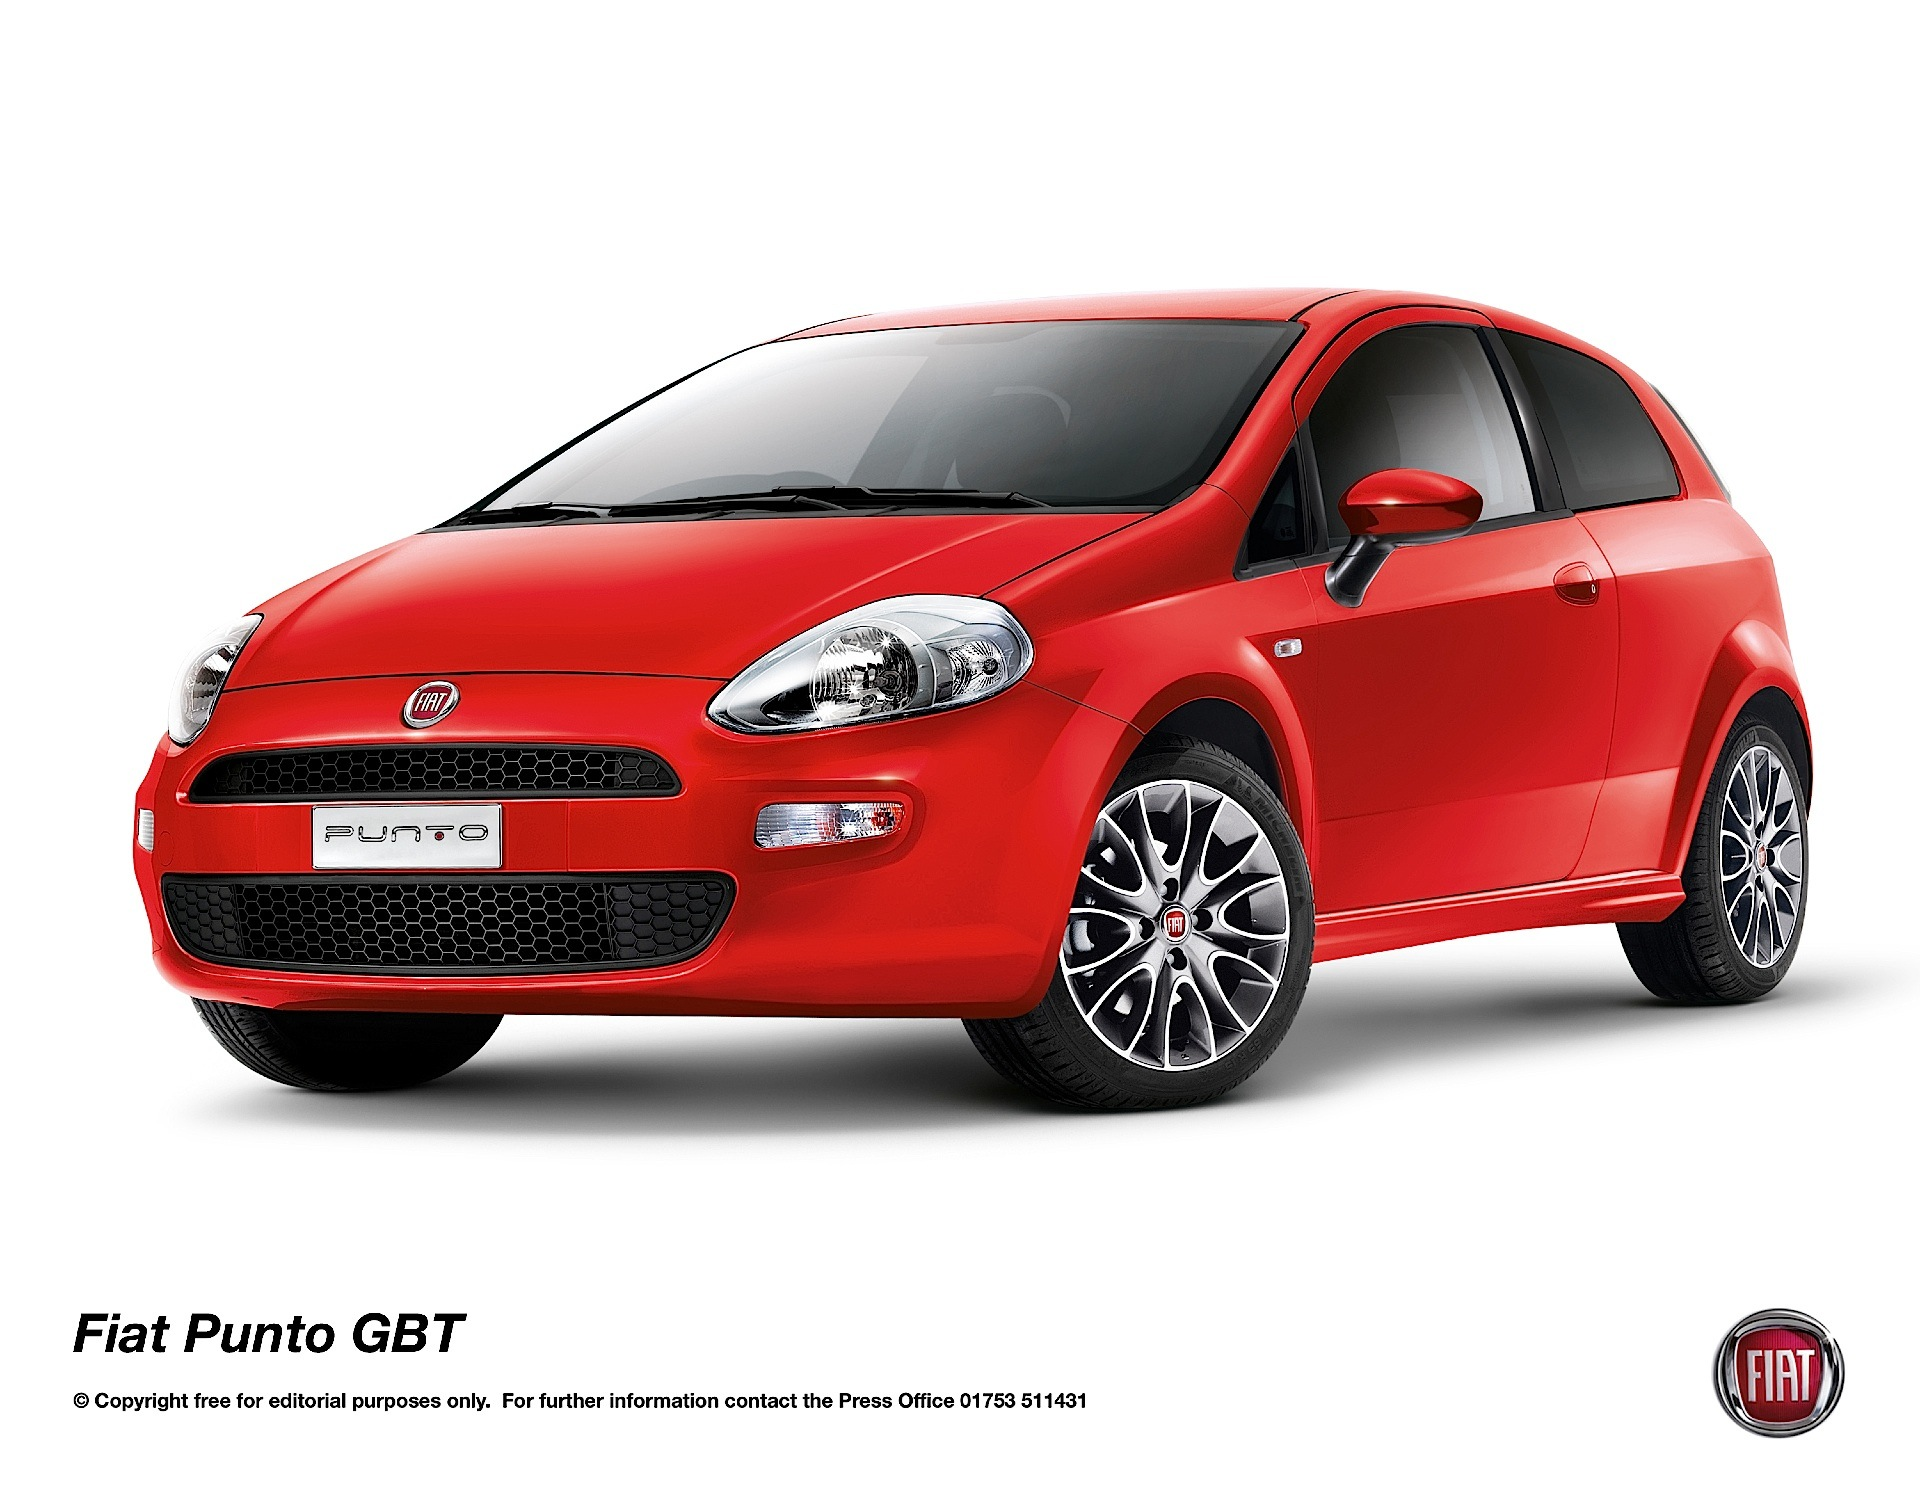 fiat punto 3 doors 2012 2013 2014 2015 2016 autoevolution. Black Bedroom Furniture Sets. Home Design Ideas